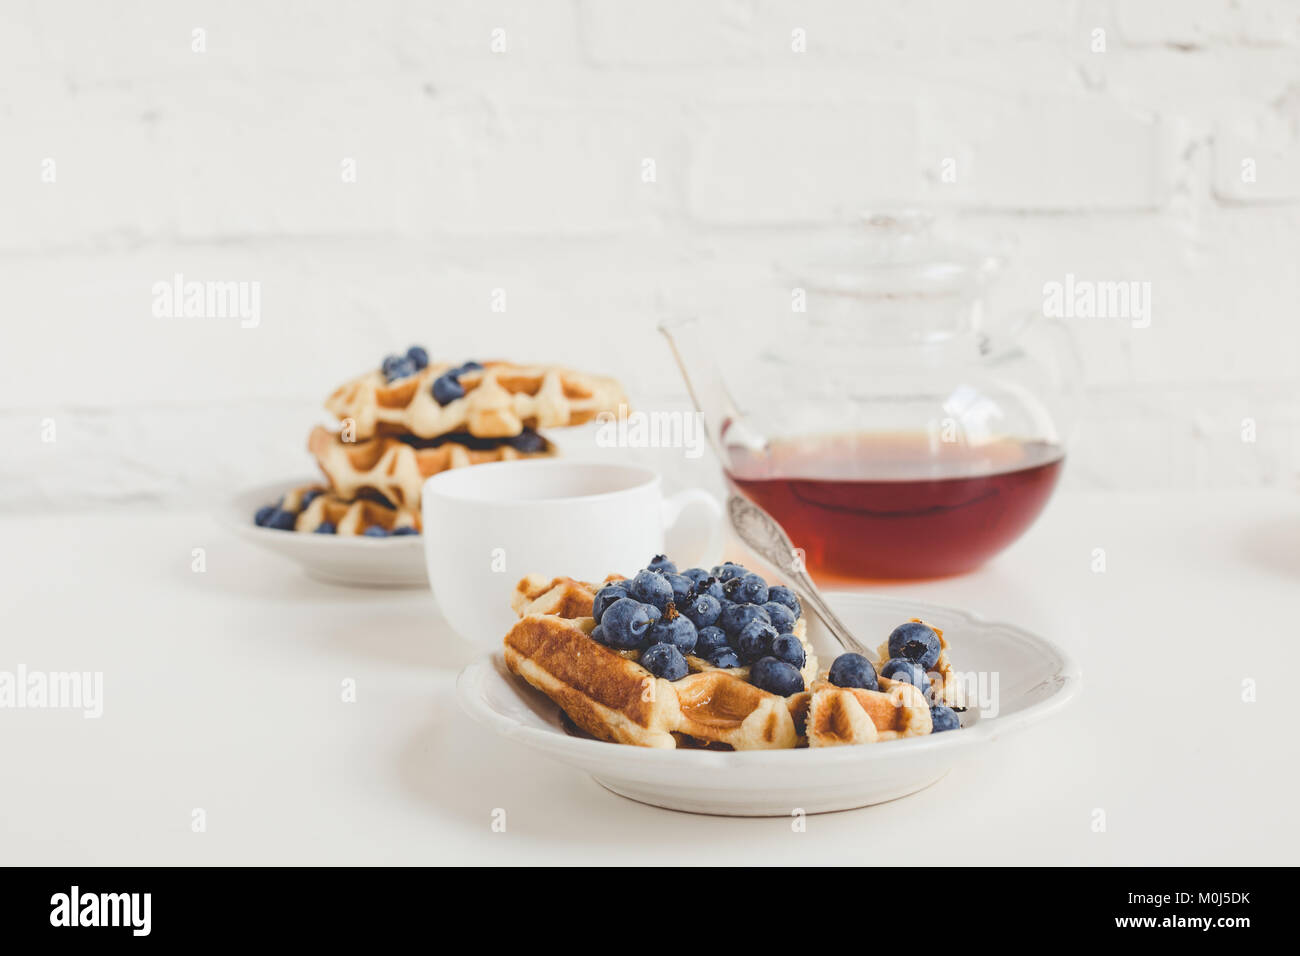 delicious breakfast of freshly baked waffles with blueberries and tea - Stock Image